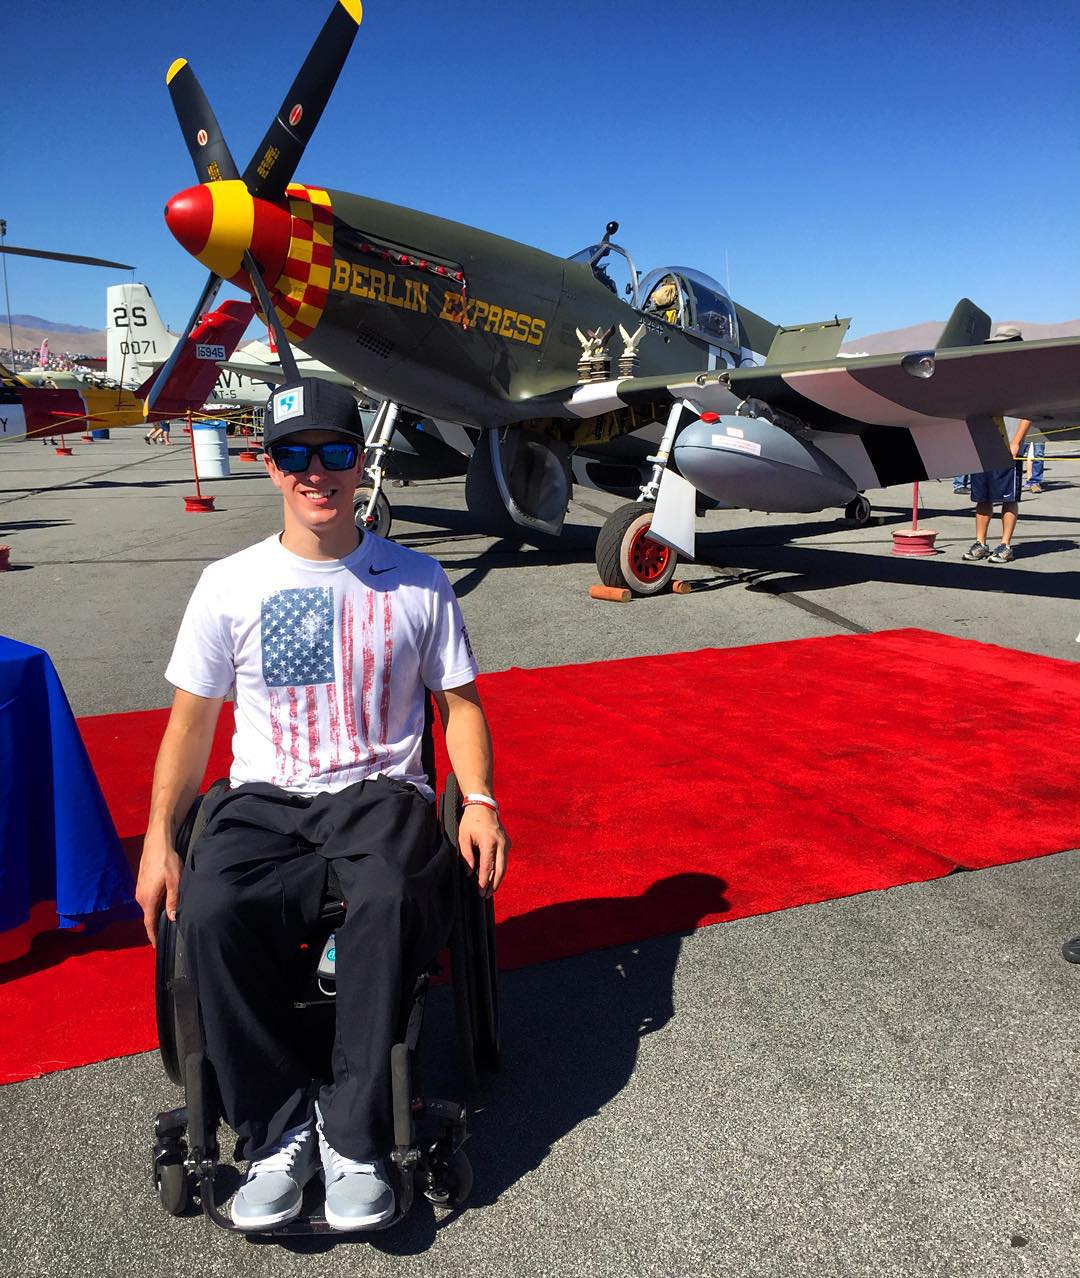 The infamous P51 Mustang and #HighFivesAthlete #NewHampshireNick at the #RenoAirRaces!